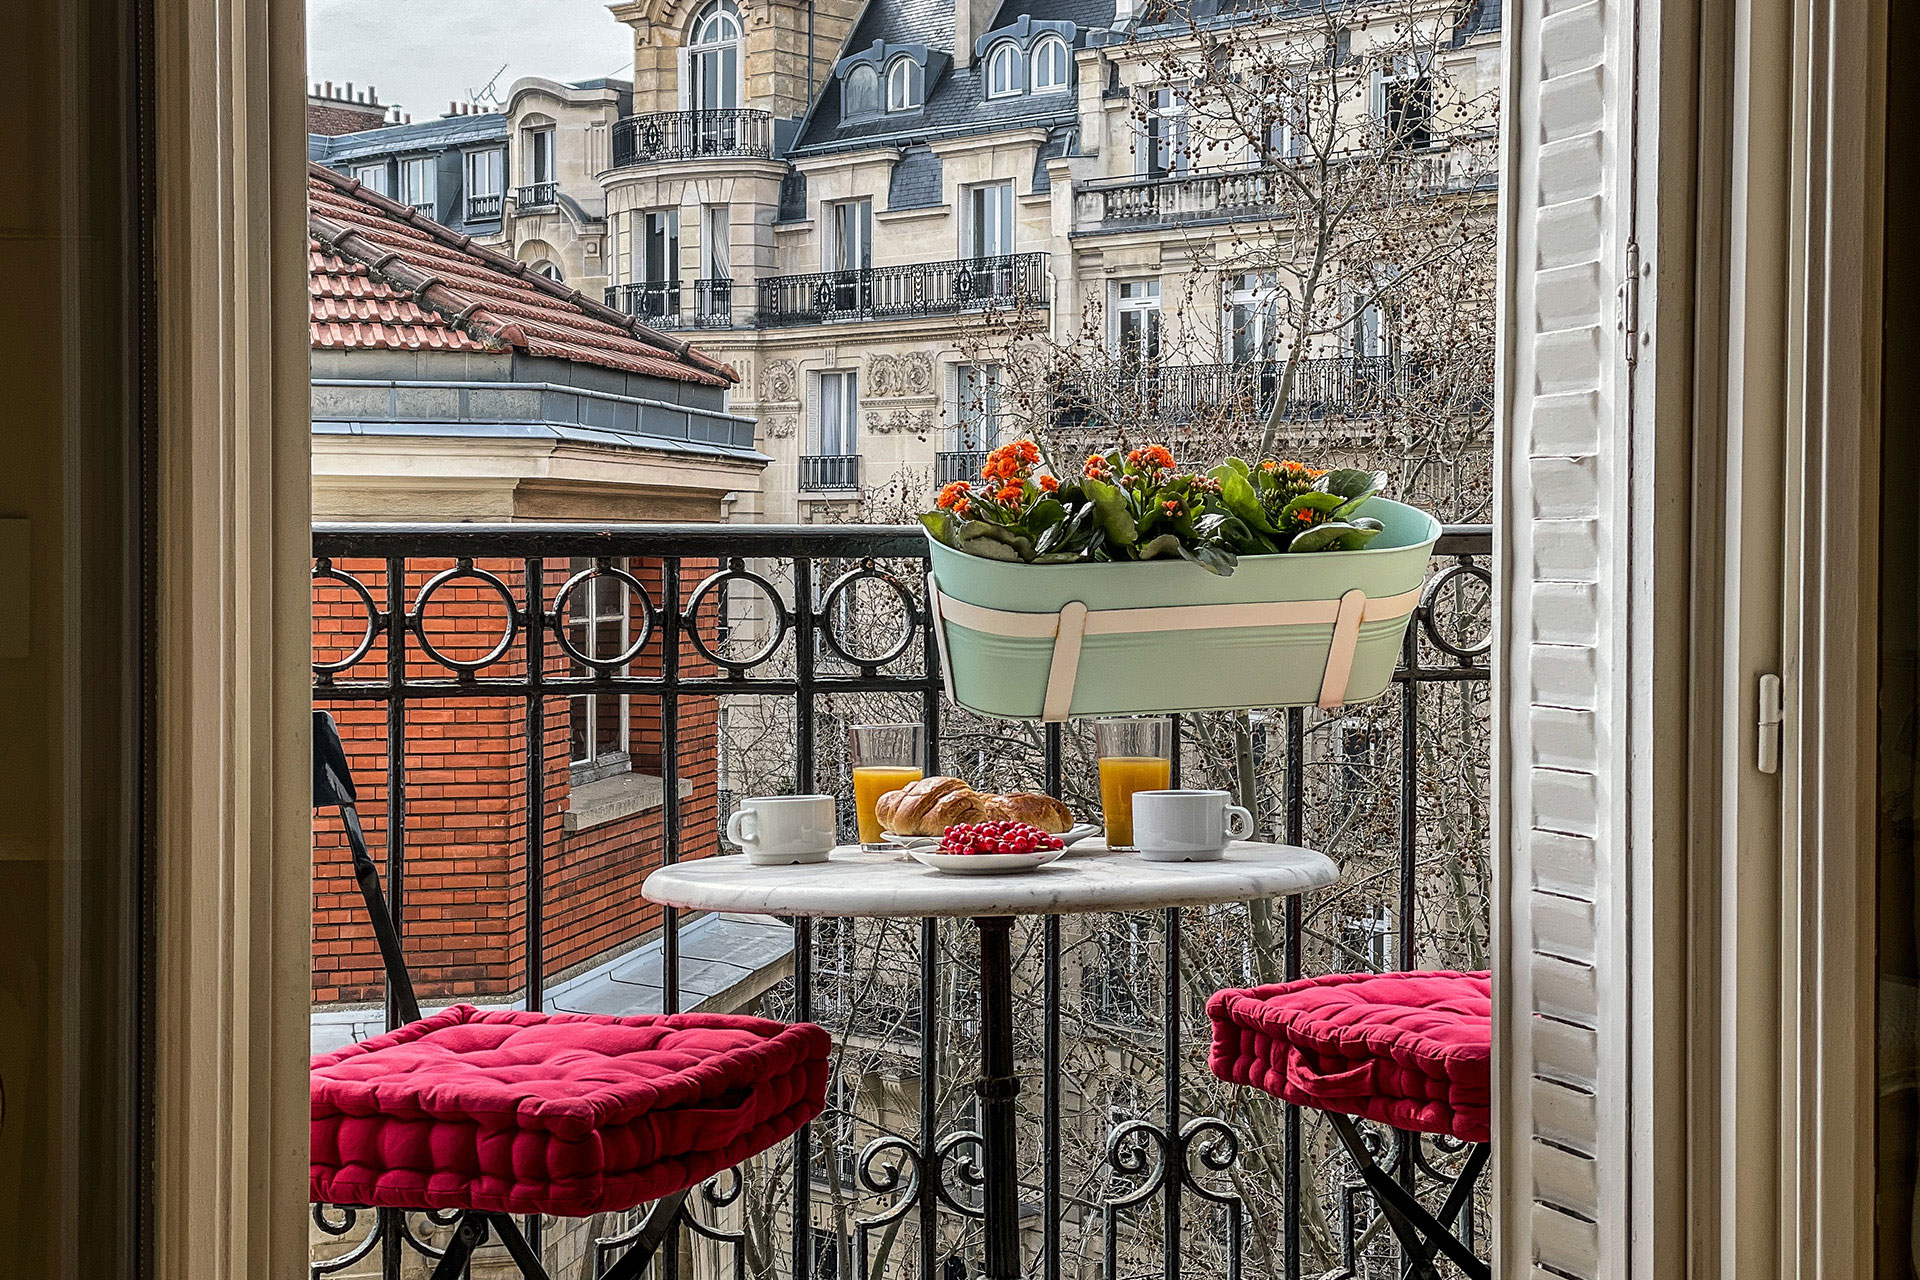 Enjoy breakfast on the long balcony with views of the Champ-de-Mars and Eiffel Tower.